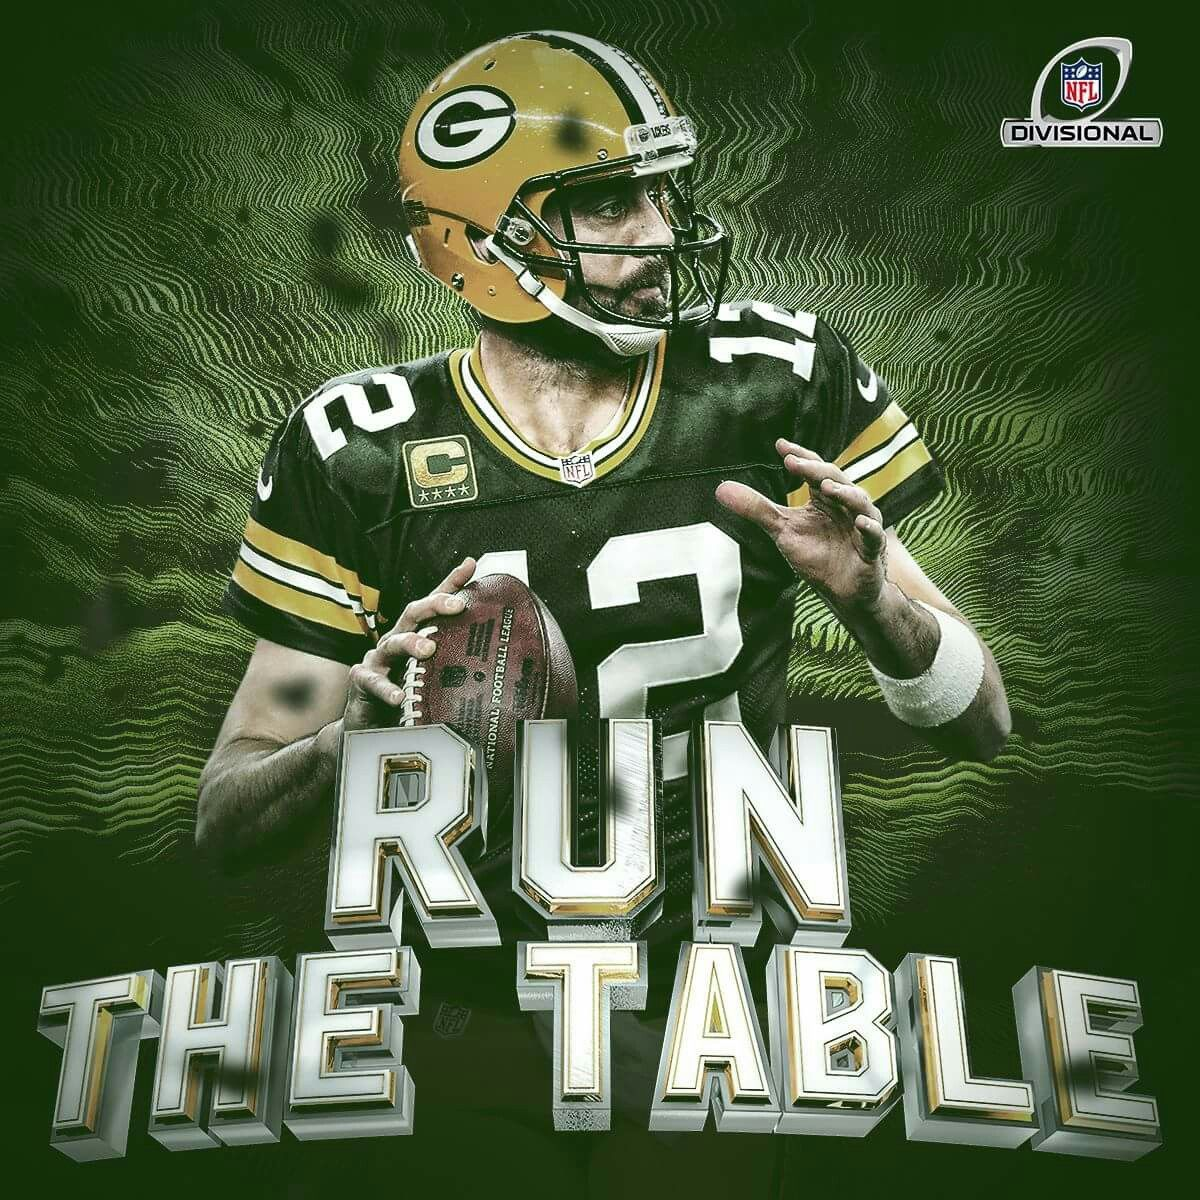 Aaron rodgers green bay packers packers football